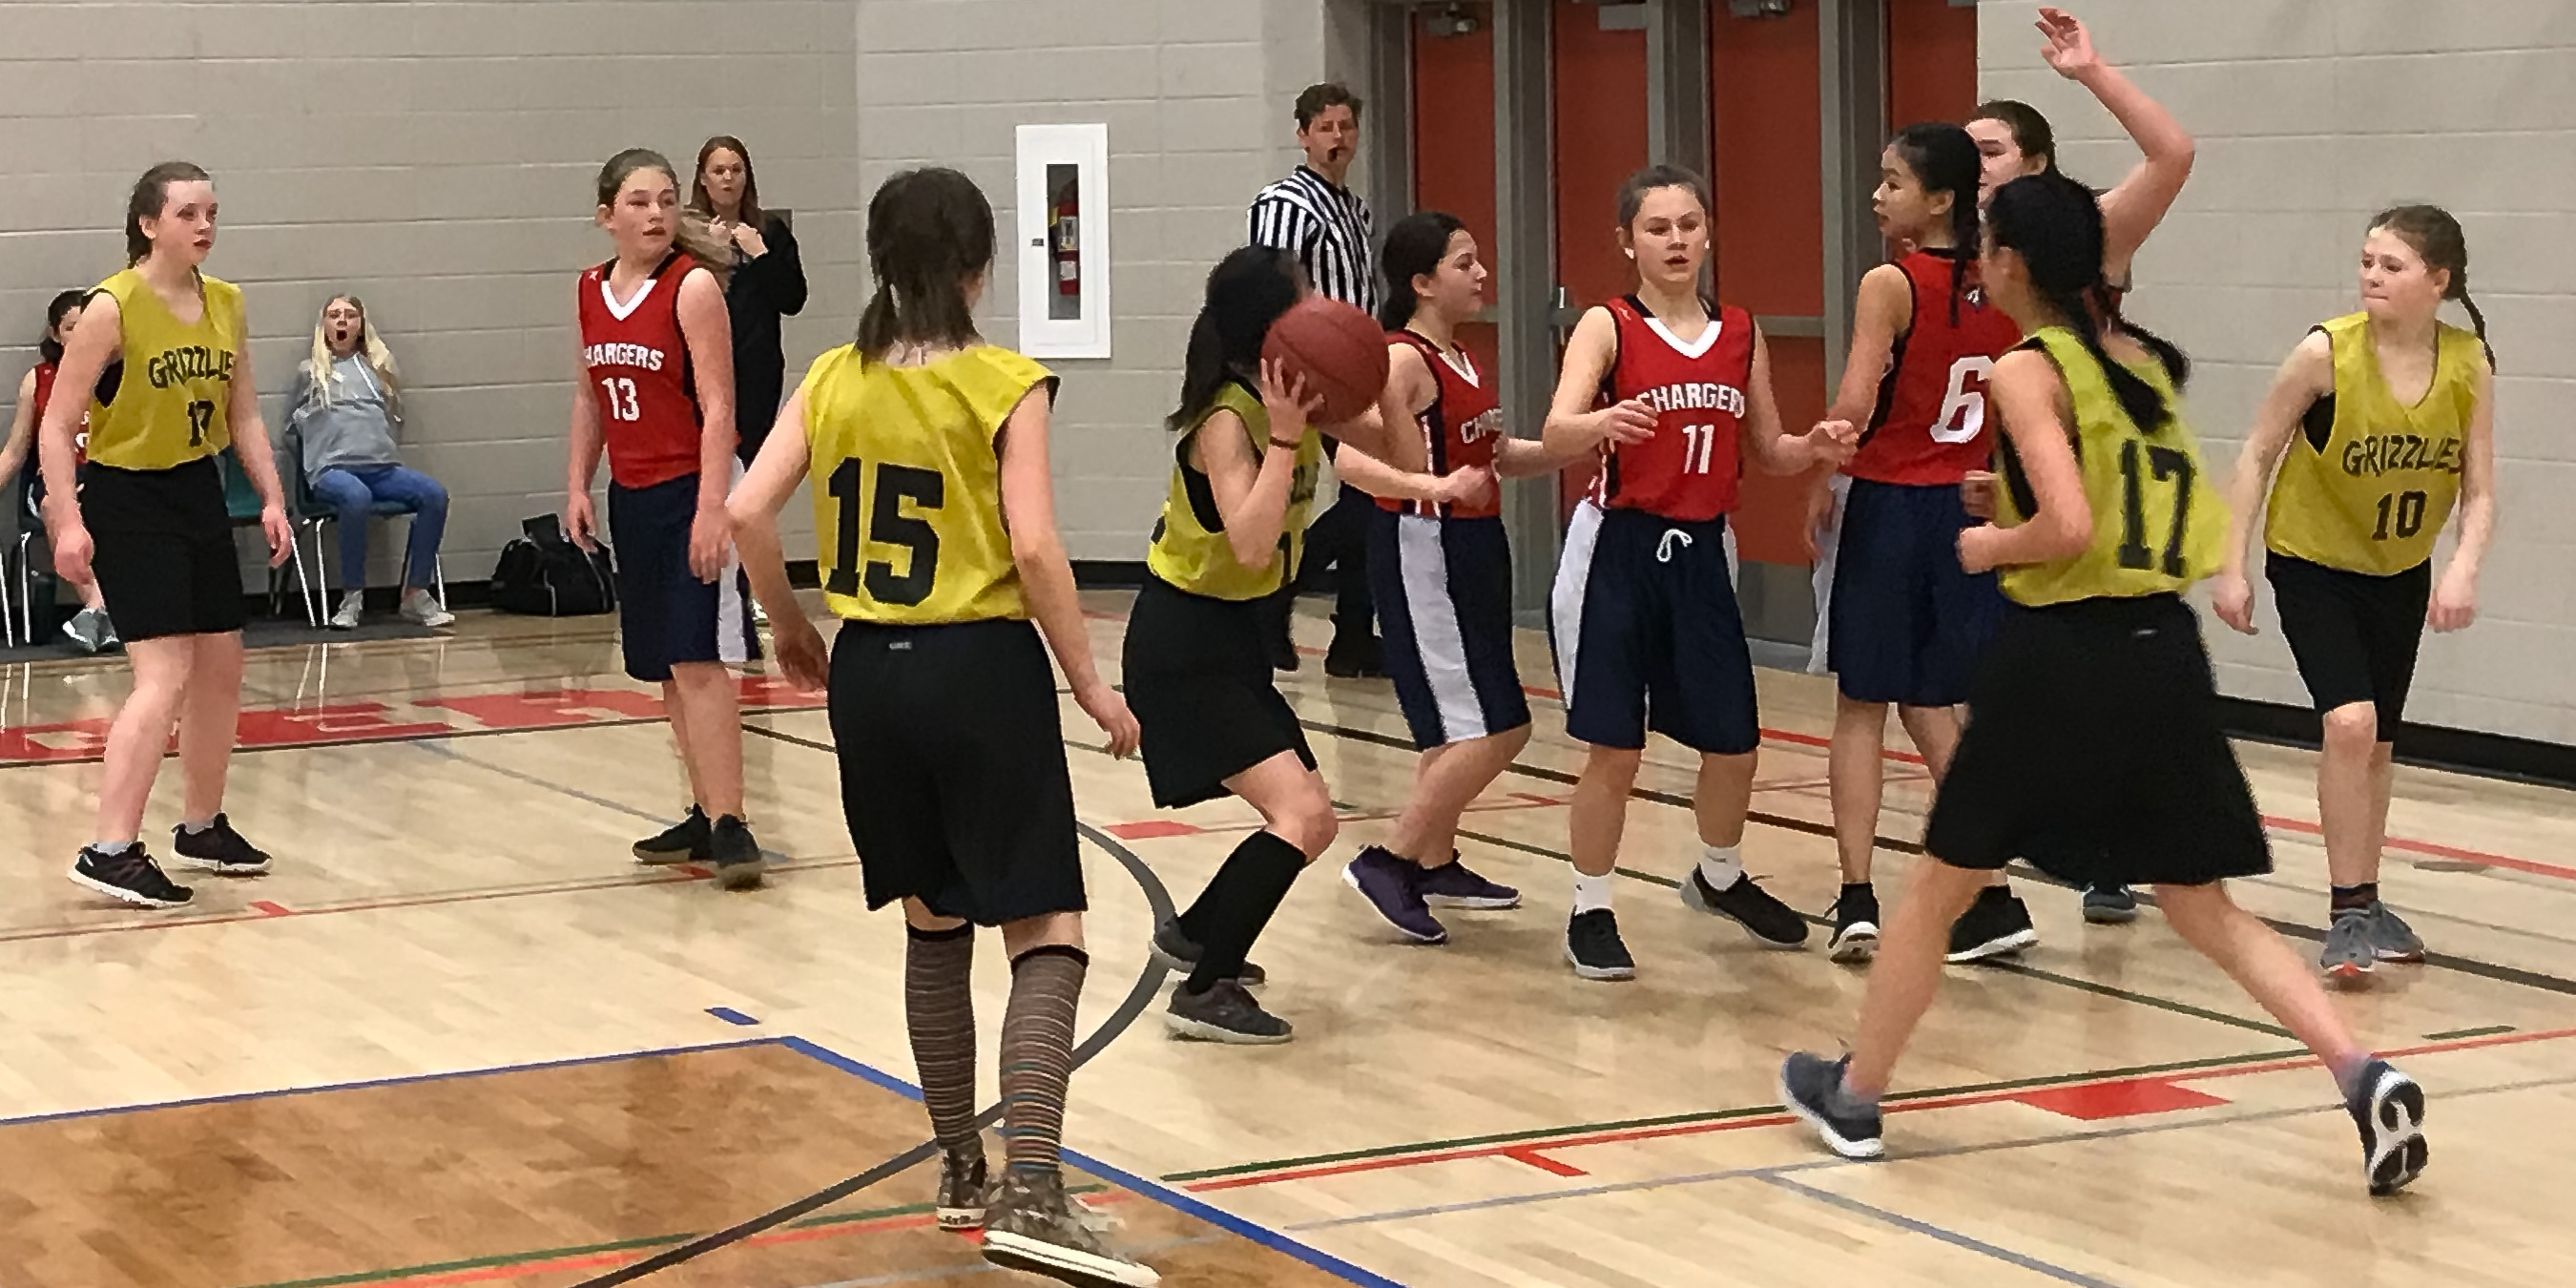 Jr. Girls' Basketball Team Takes 2nd Place at the Percy Baxter Fair Play Tournament March 16